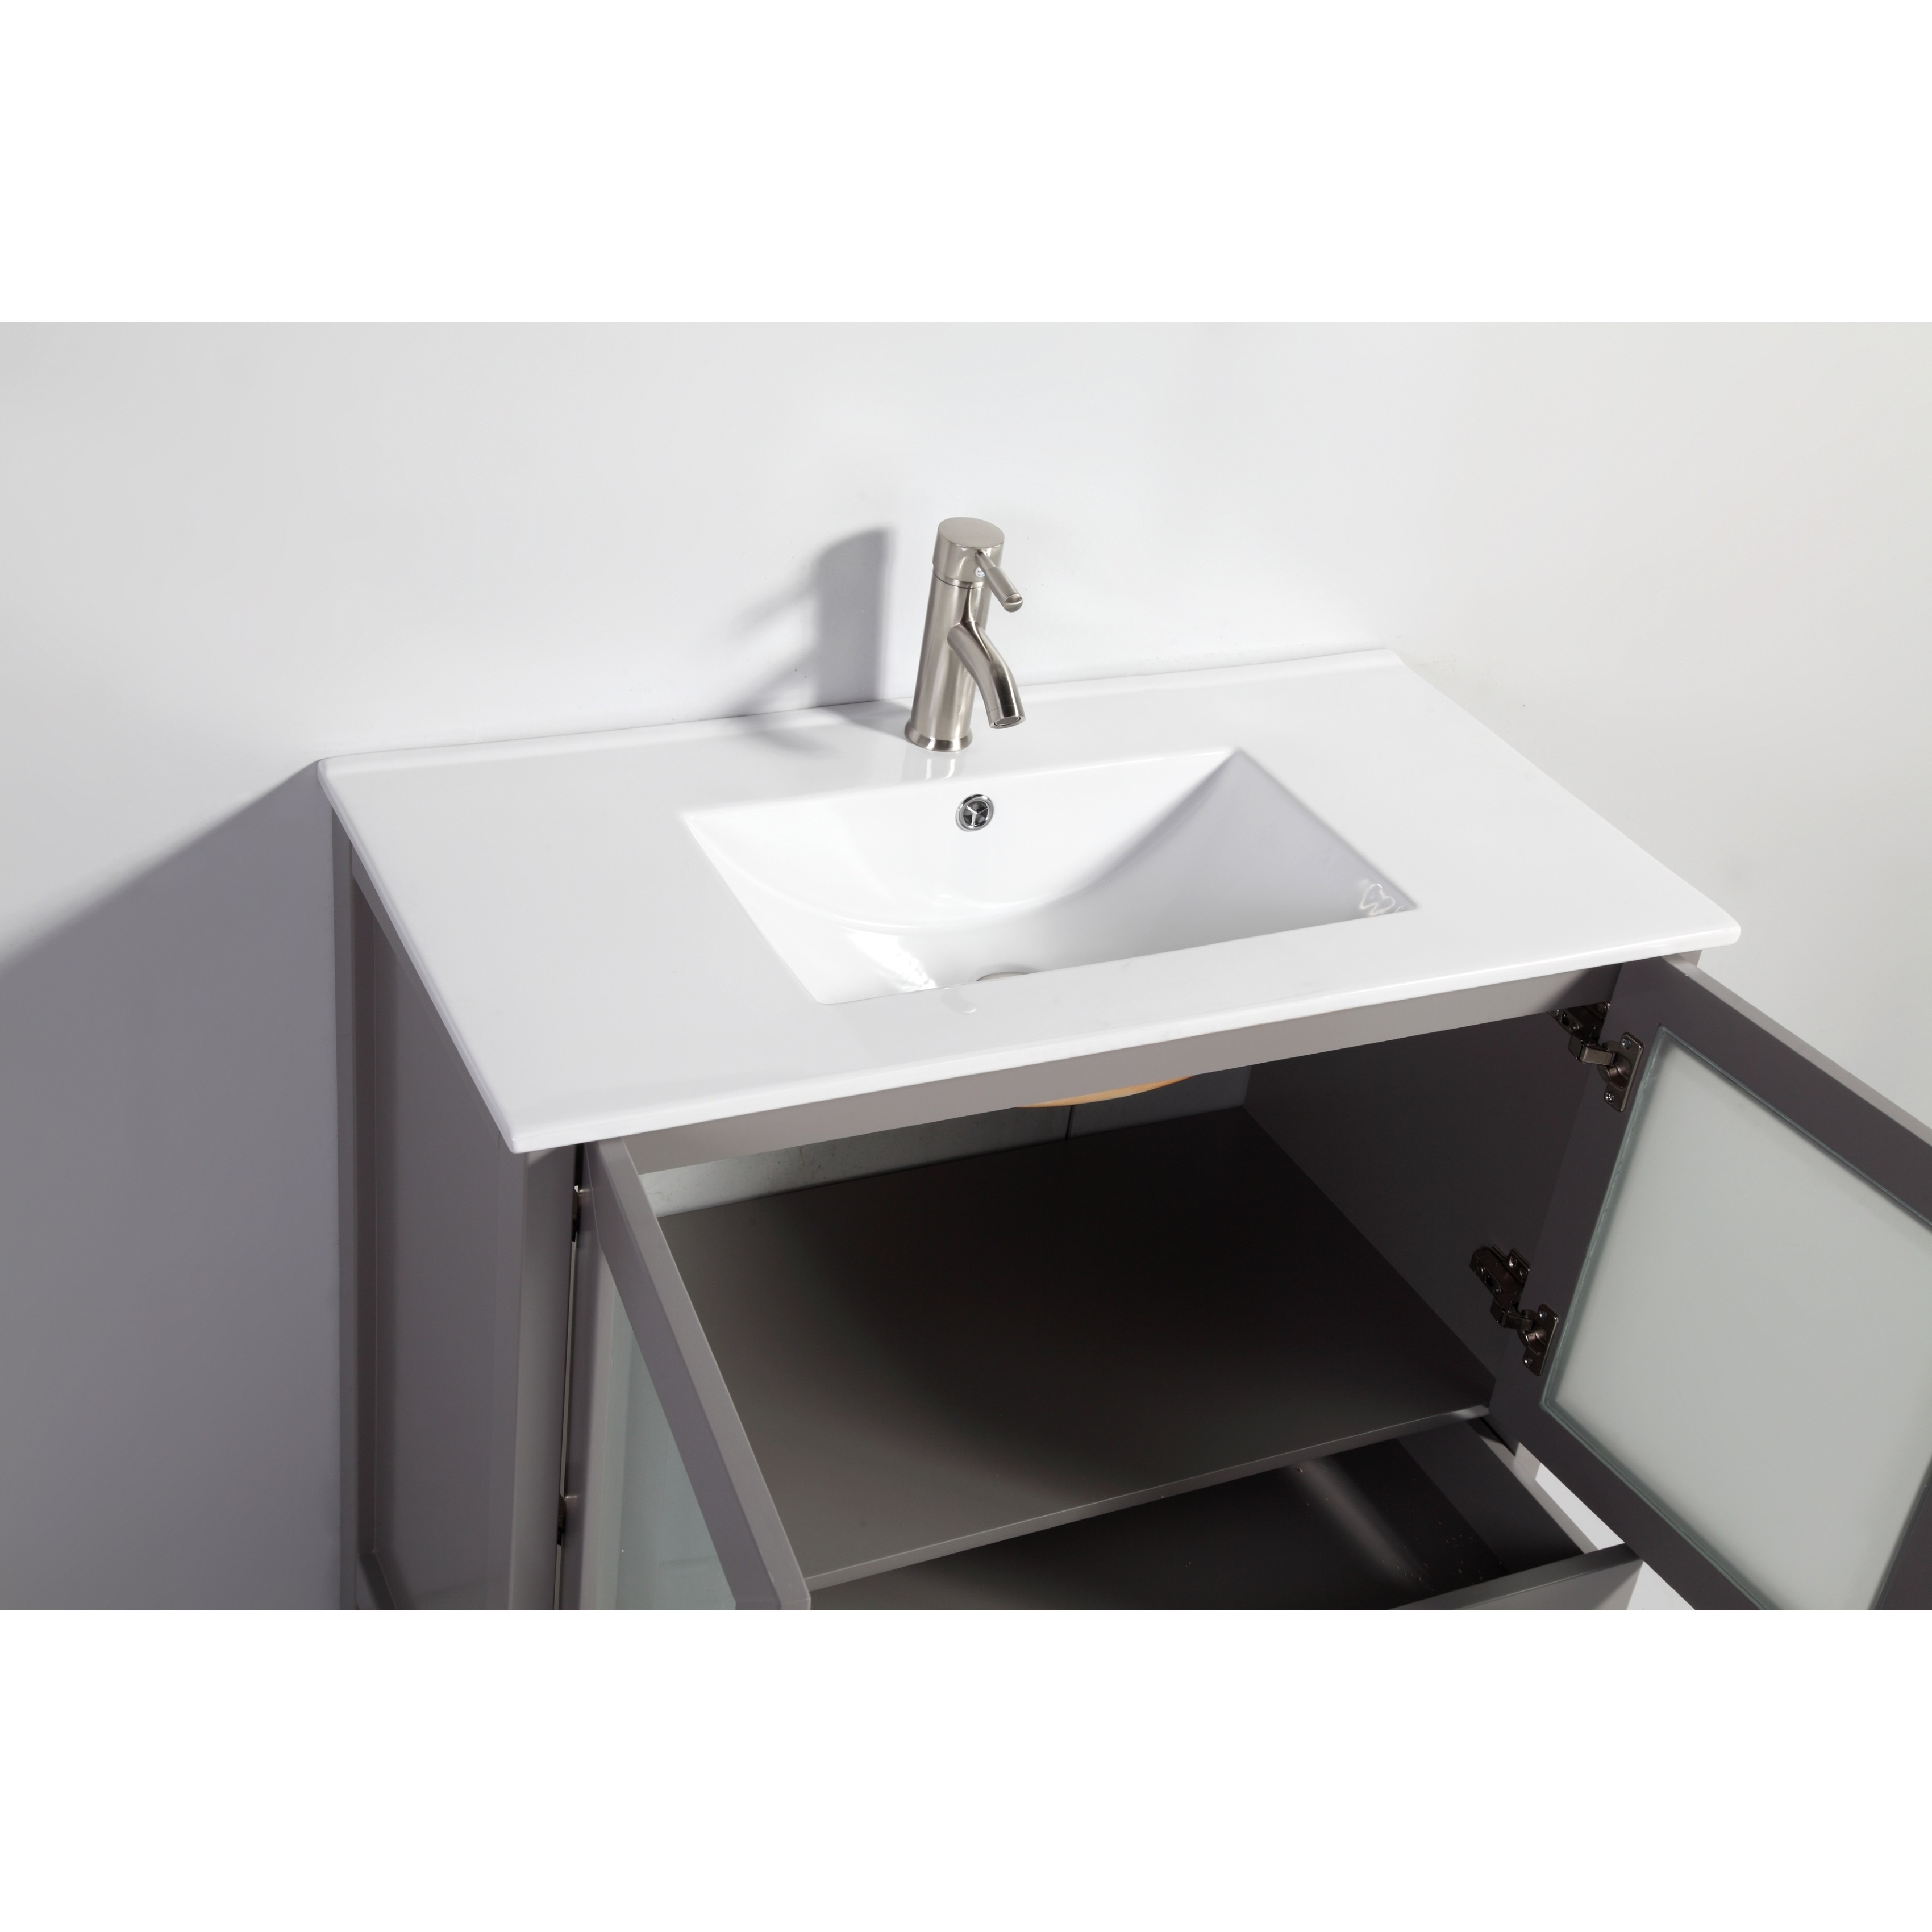 96 inch double vanity. Vanity Art Ceramic Sink Top 96 inch Double Bathroom Set  Free Shipping Today Overstock com 19404477